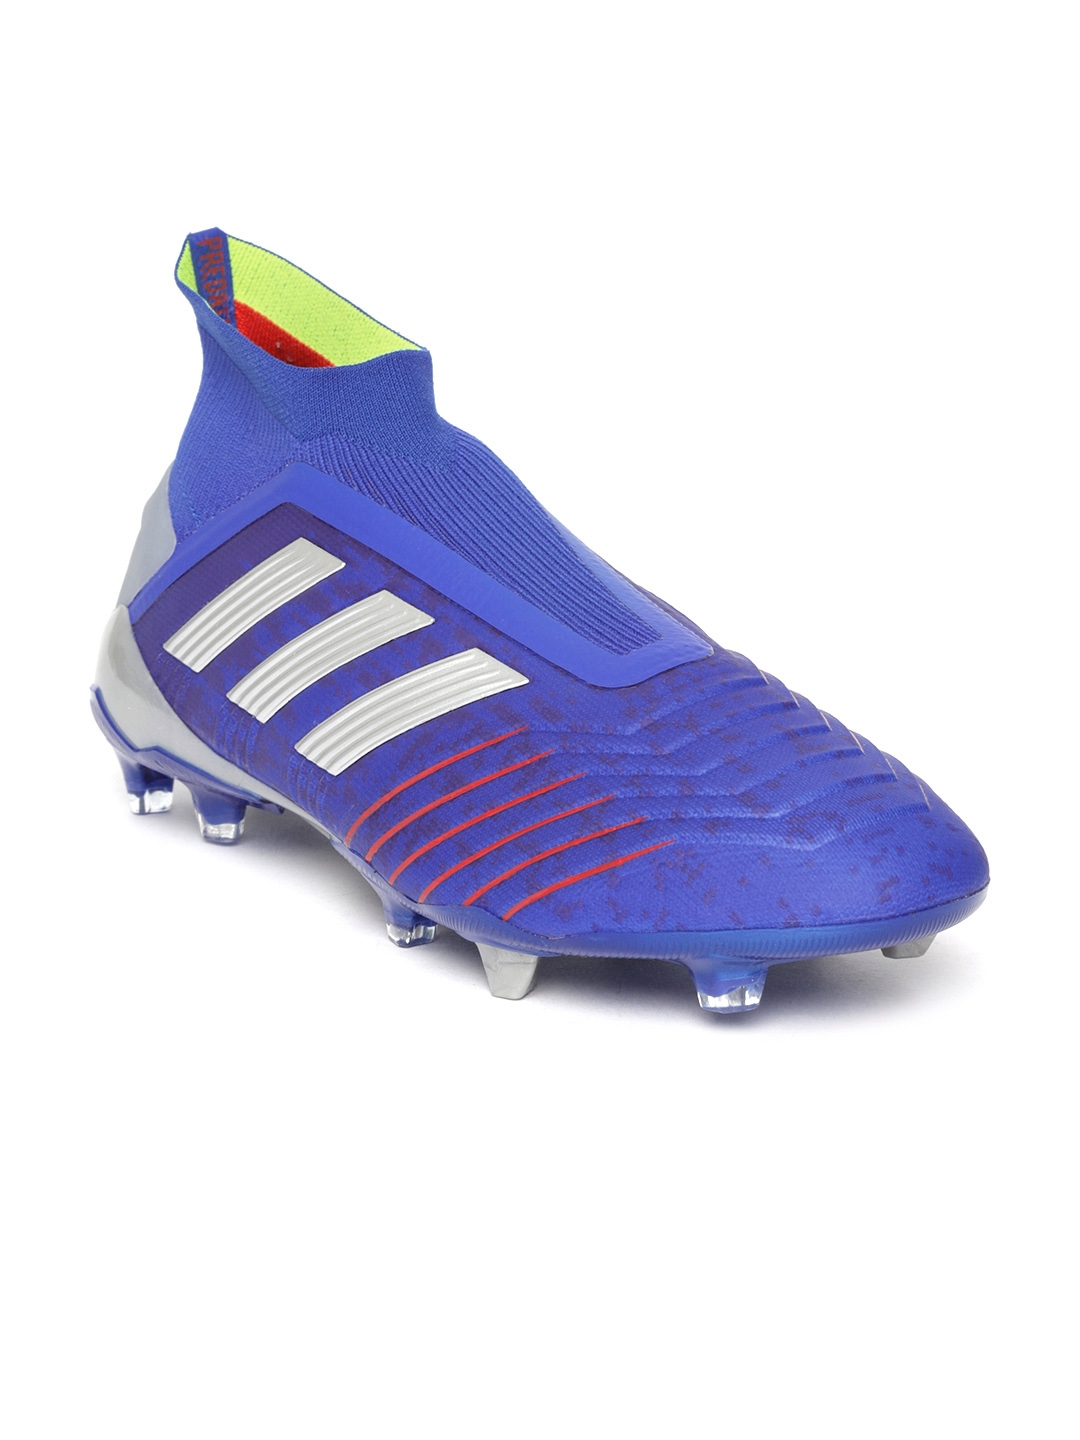 8dbebac7f ADIDAS Men Blue PREDATOR 19+ Firm Ground Football Shoes. This product is  already at its best price